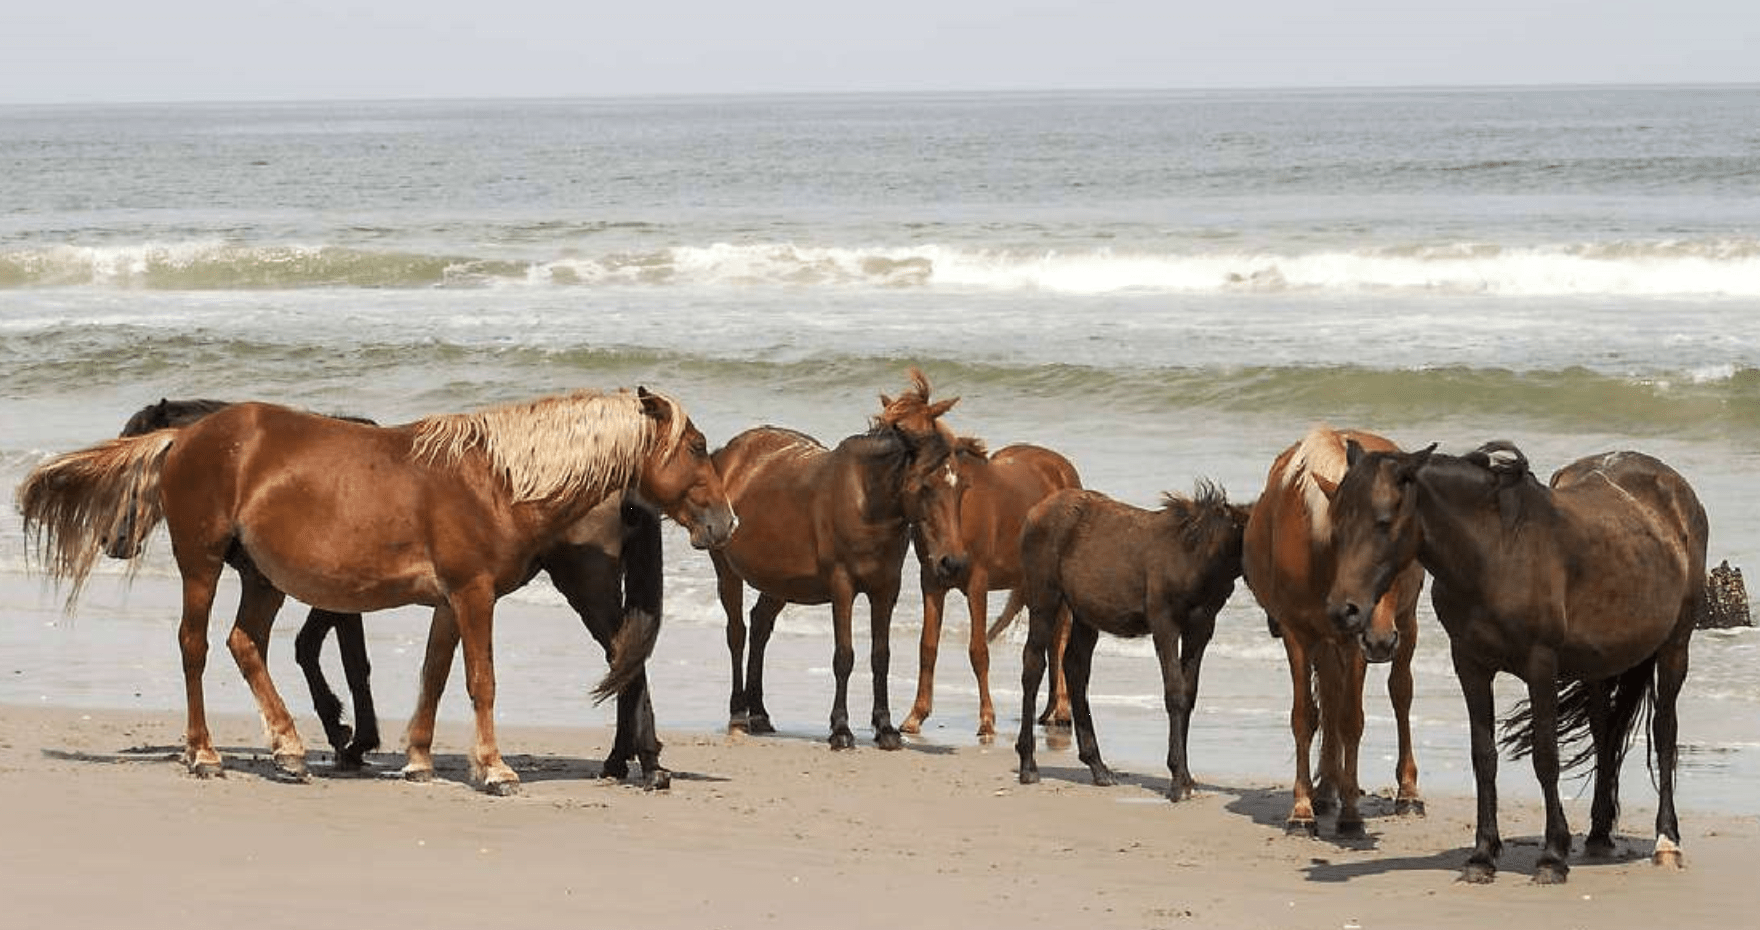 Horsing around on the beautiful Outer Banks beach